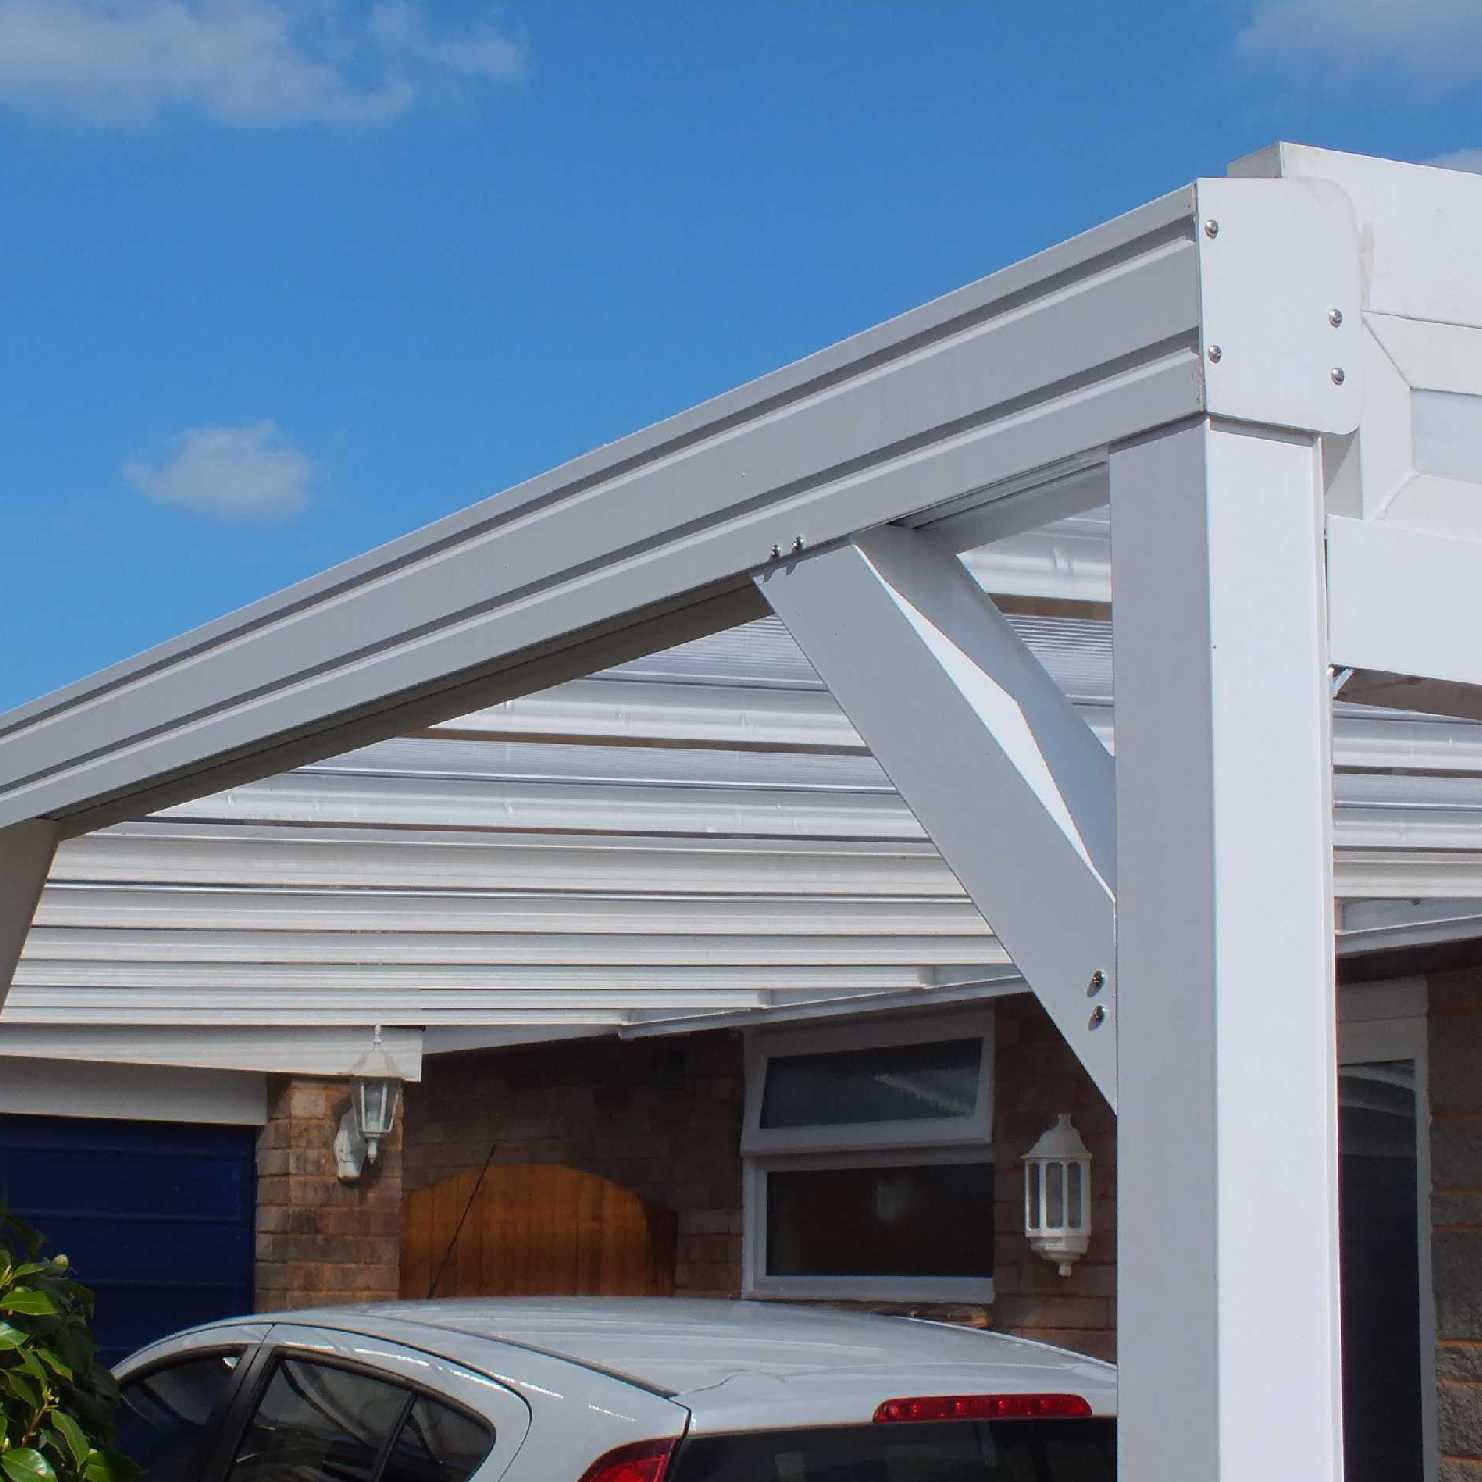 Buy Omega Smart White Lean-To Canopy with 16mm Polycarbonate Glazing - 5.2m (W) x 4.5m (P), (3) Supporting Posts online today